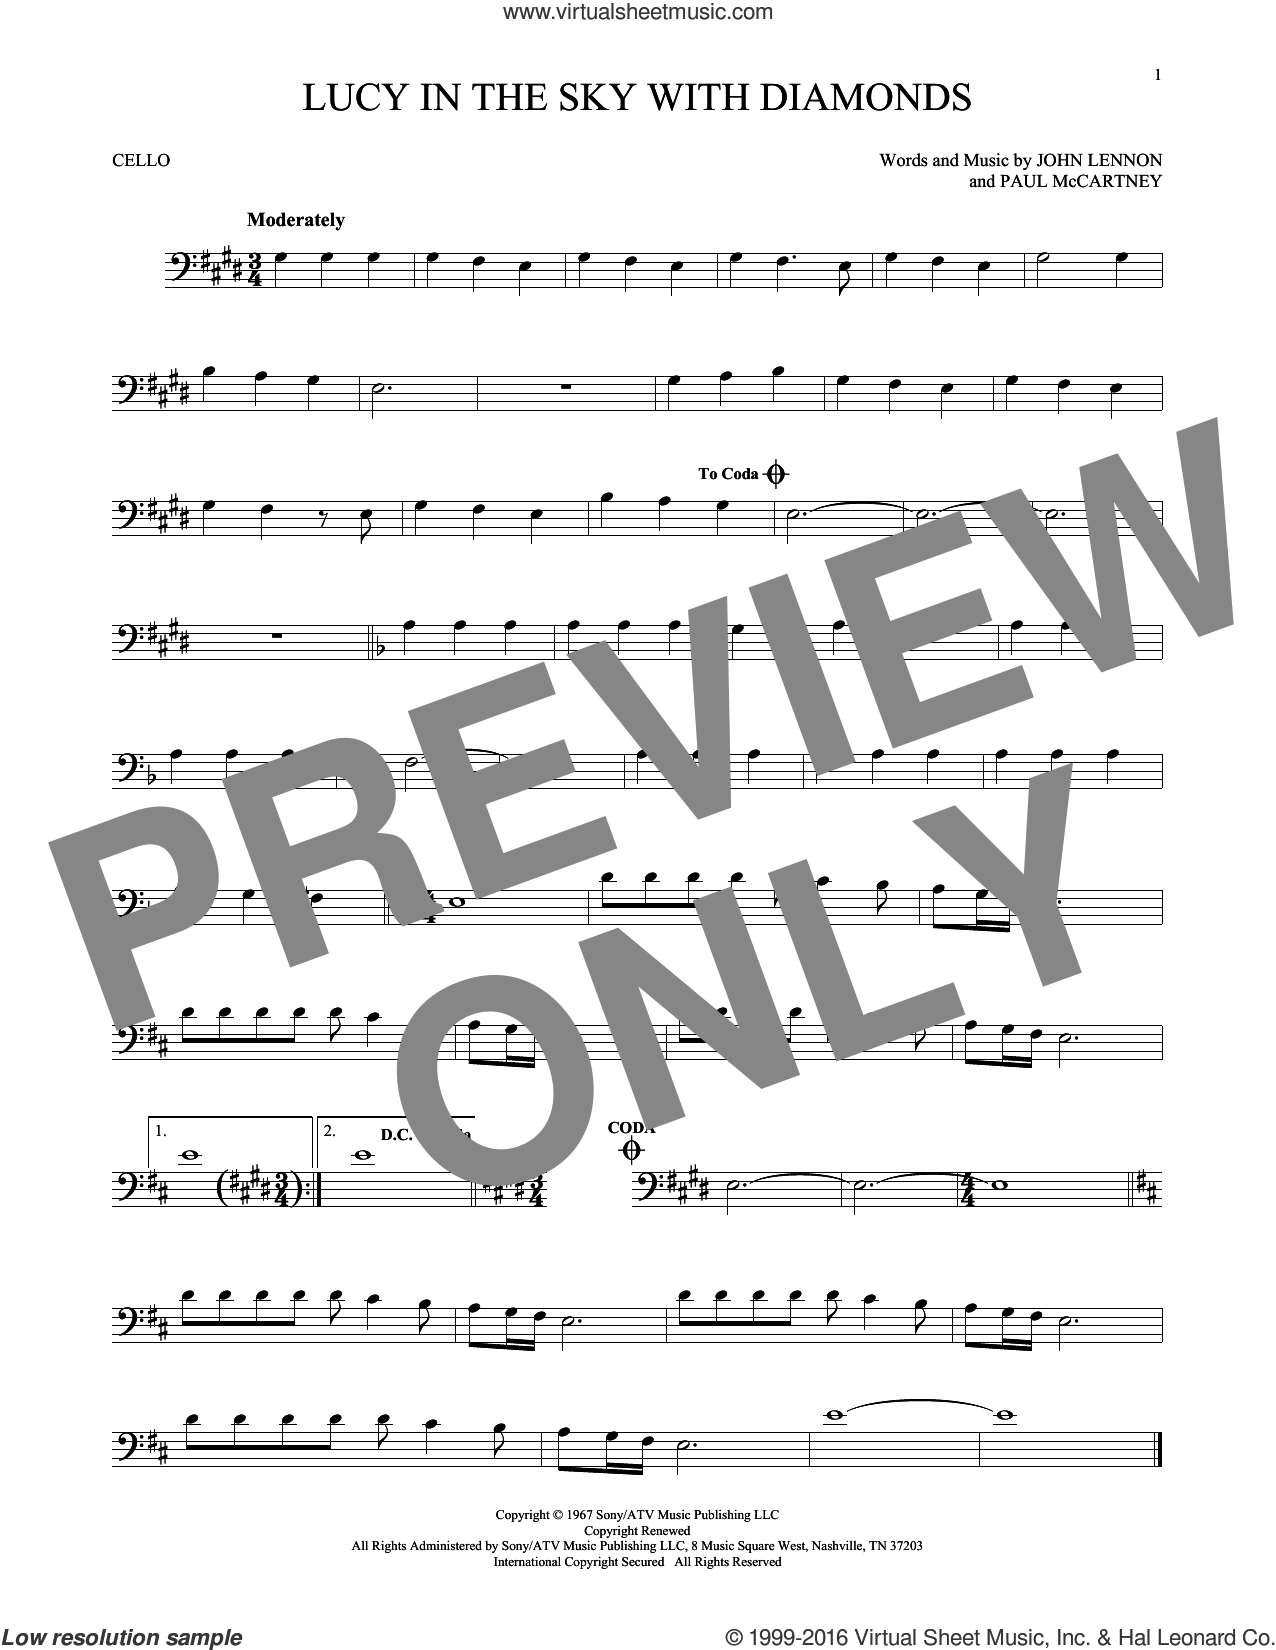 Lucy In The Sky With Diamonds sheet music for cello solo by Paul McCartney, Elton John, The Beatles and John Lennon. Score Image Preview.